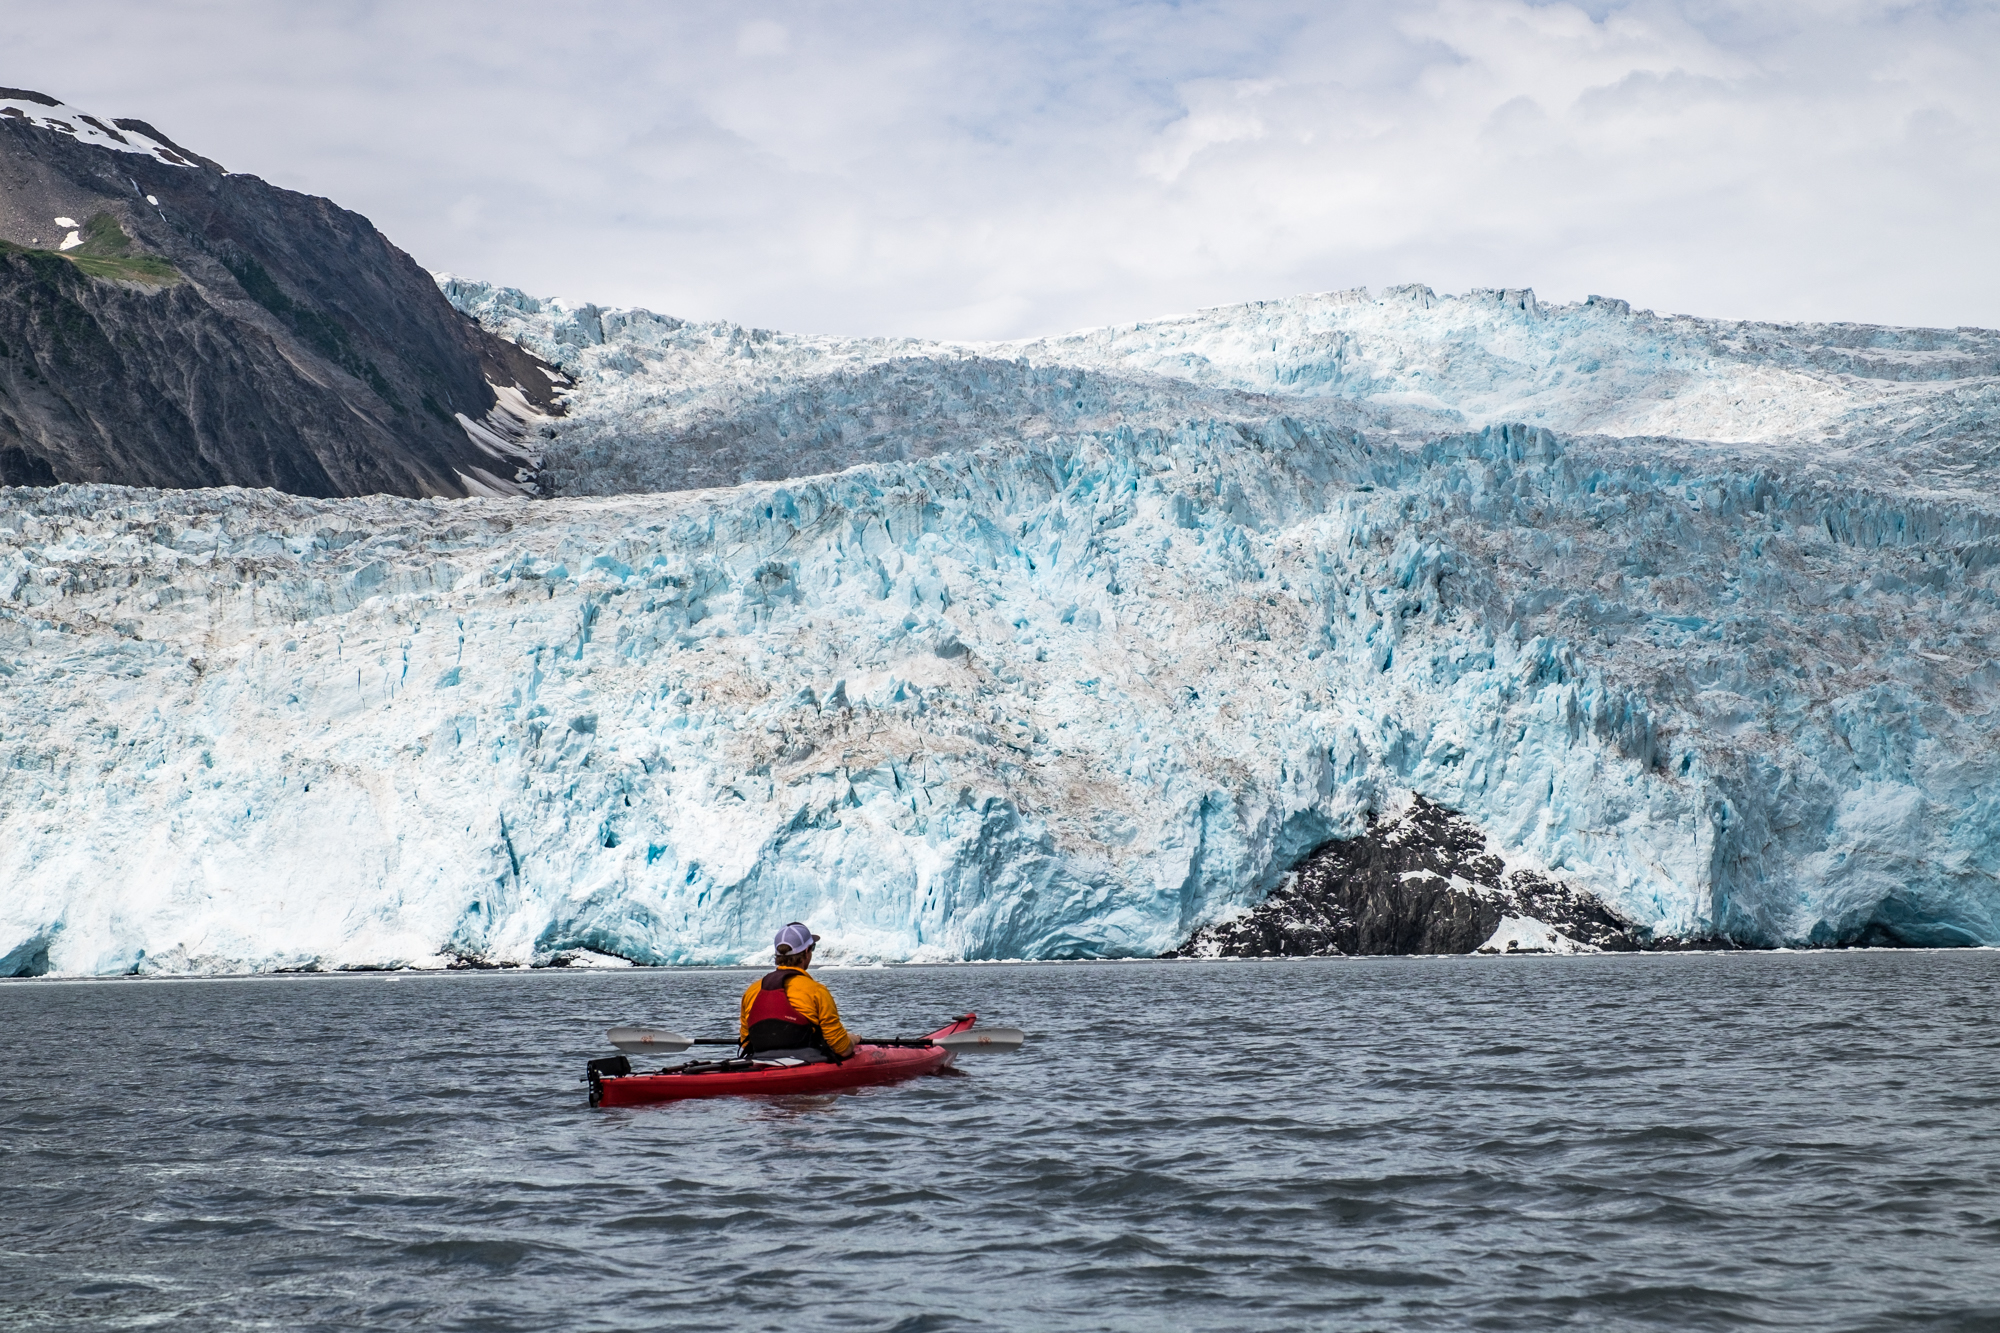 Kayaking next to the Aialik Glacier in Aialik Bay, one of the most active glaciers in Kenai Fjords National Park.